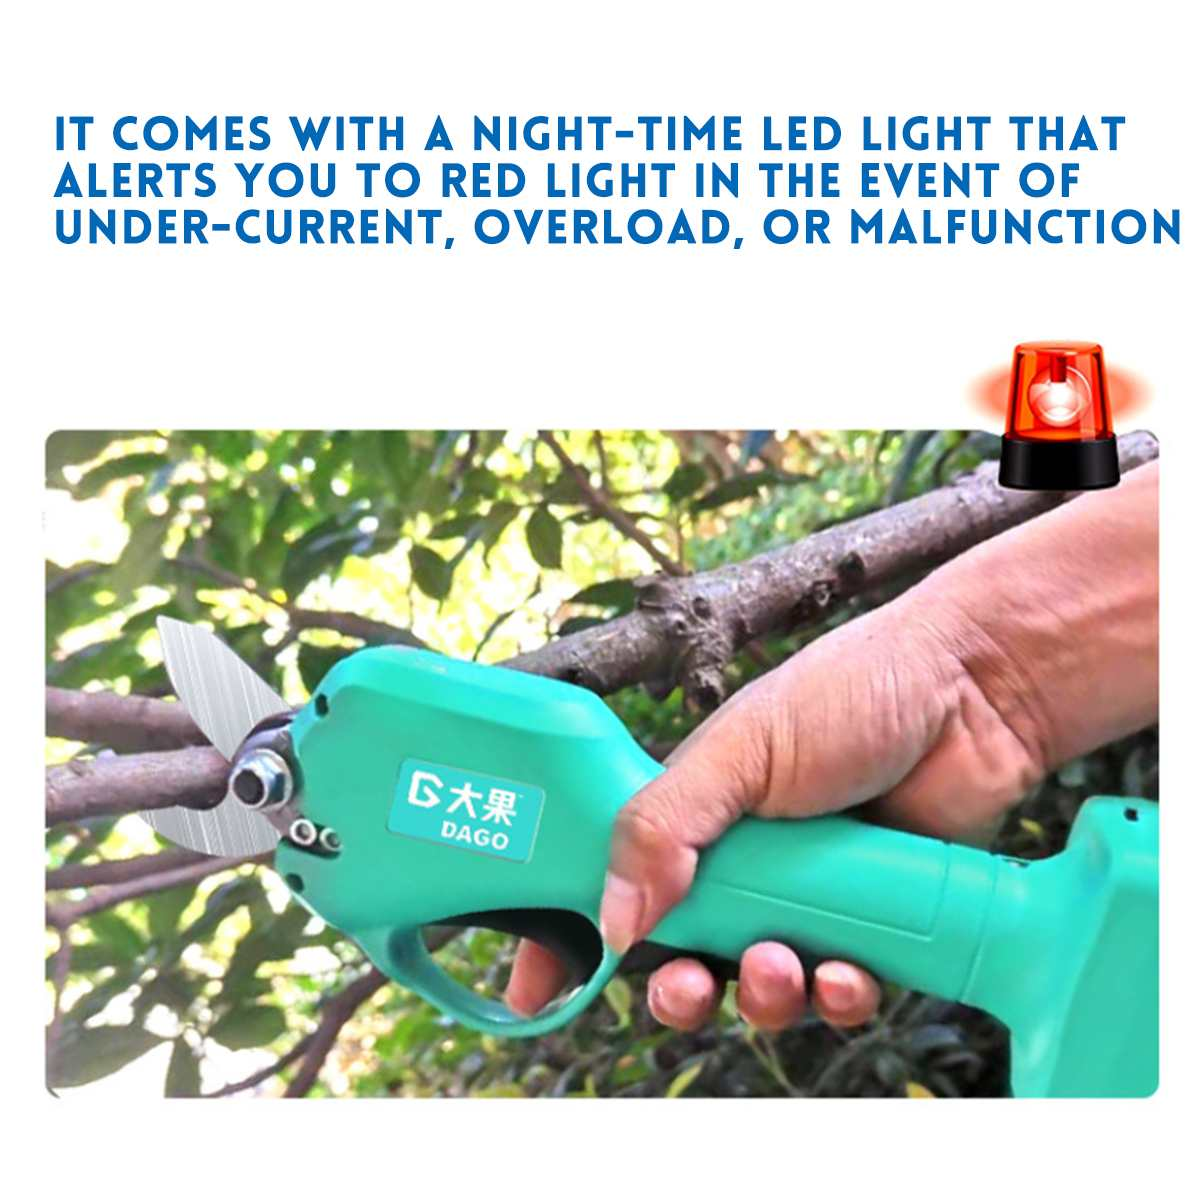 21V Wireless and Rechargeable Electric Garden Scissors for Pruning Branches with 30mm Maximum Cutting and 2 Li-ion Battery 9